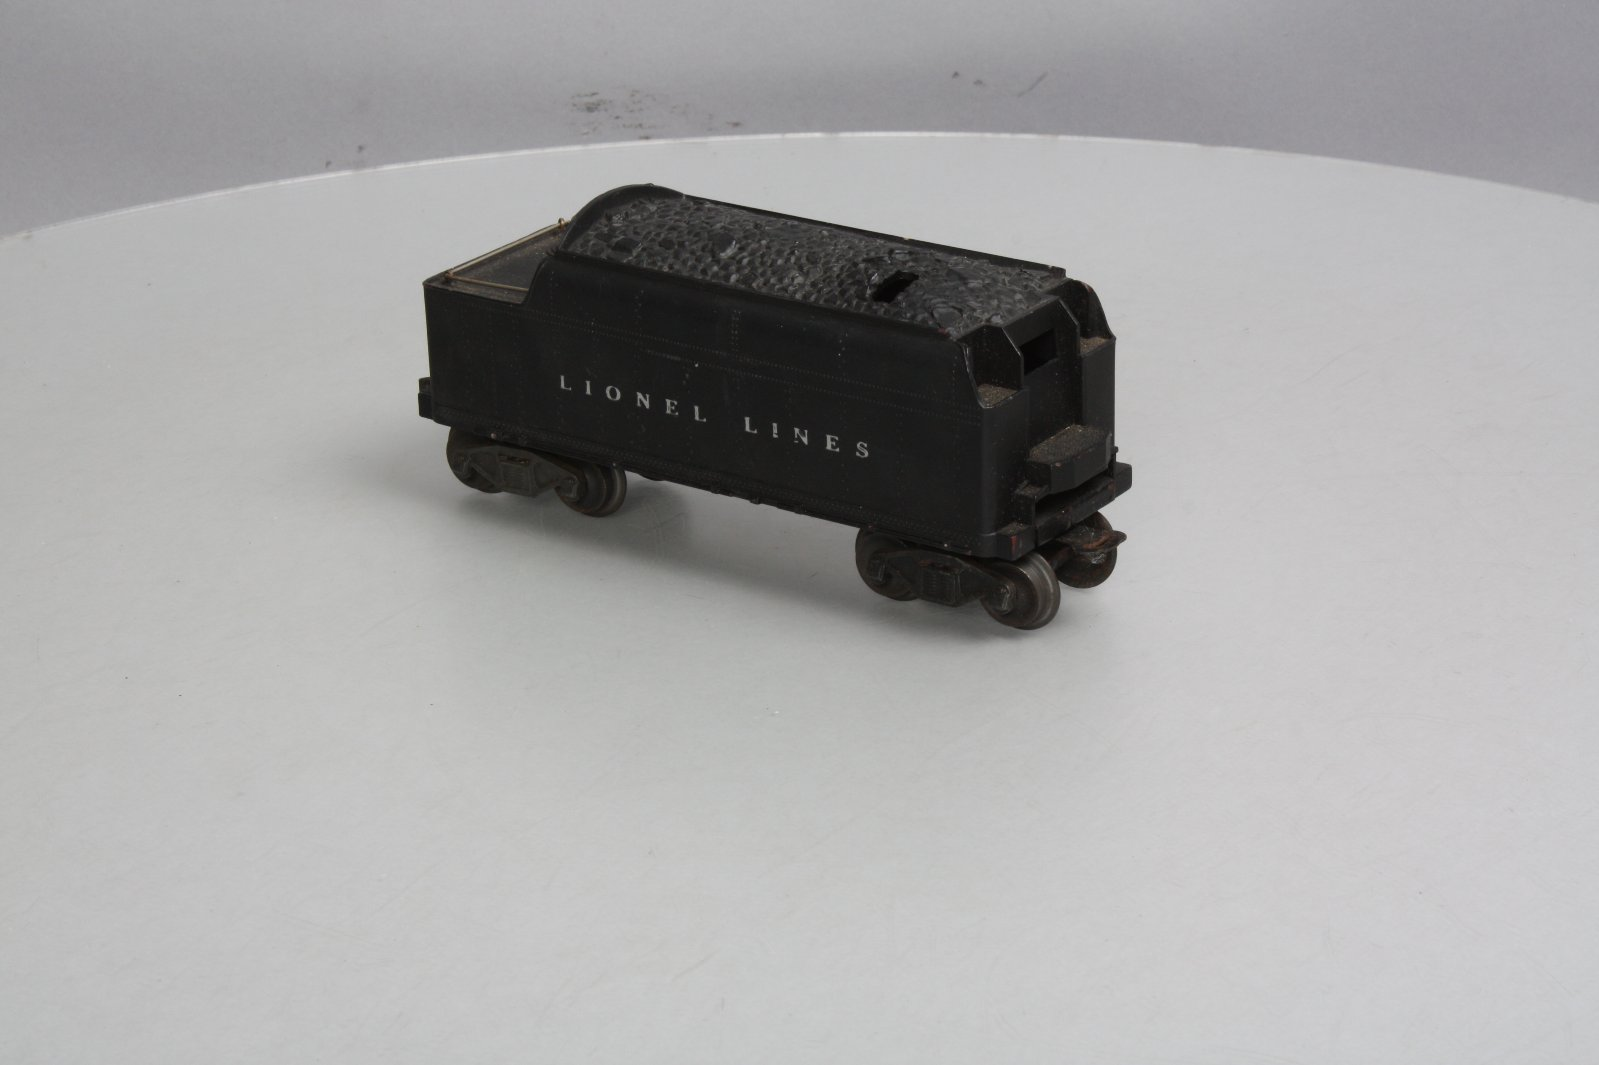 lionel 2046w wiring diagram wiring diagram Lionel 2046 Steam Locomotive wrg 1178] lionel 2046w wiring diagramlionel trains 2046w tender wiring diagram explained wiring diagrams lionel